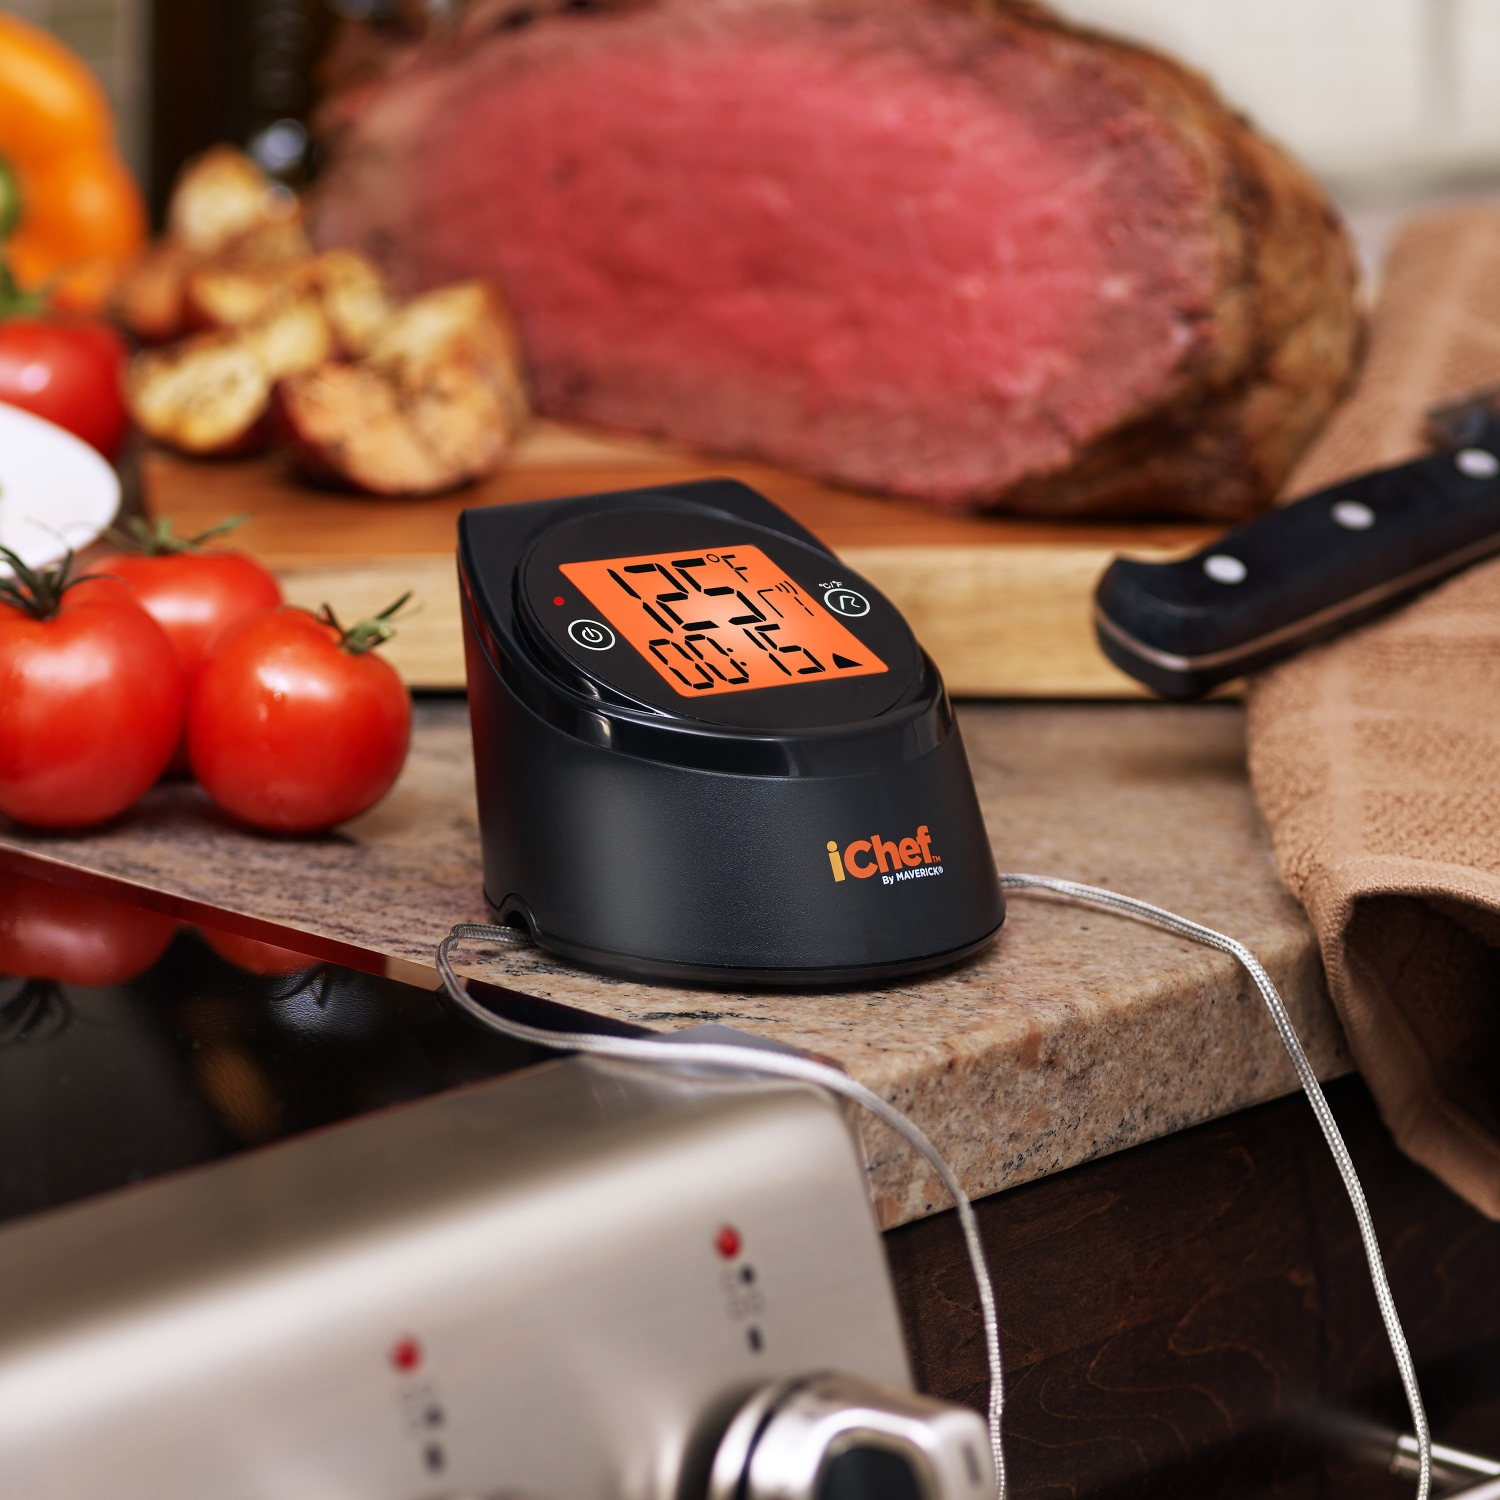 iChef meat thermometer